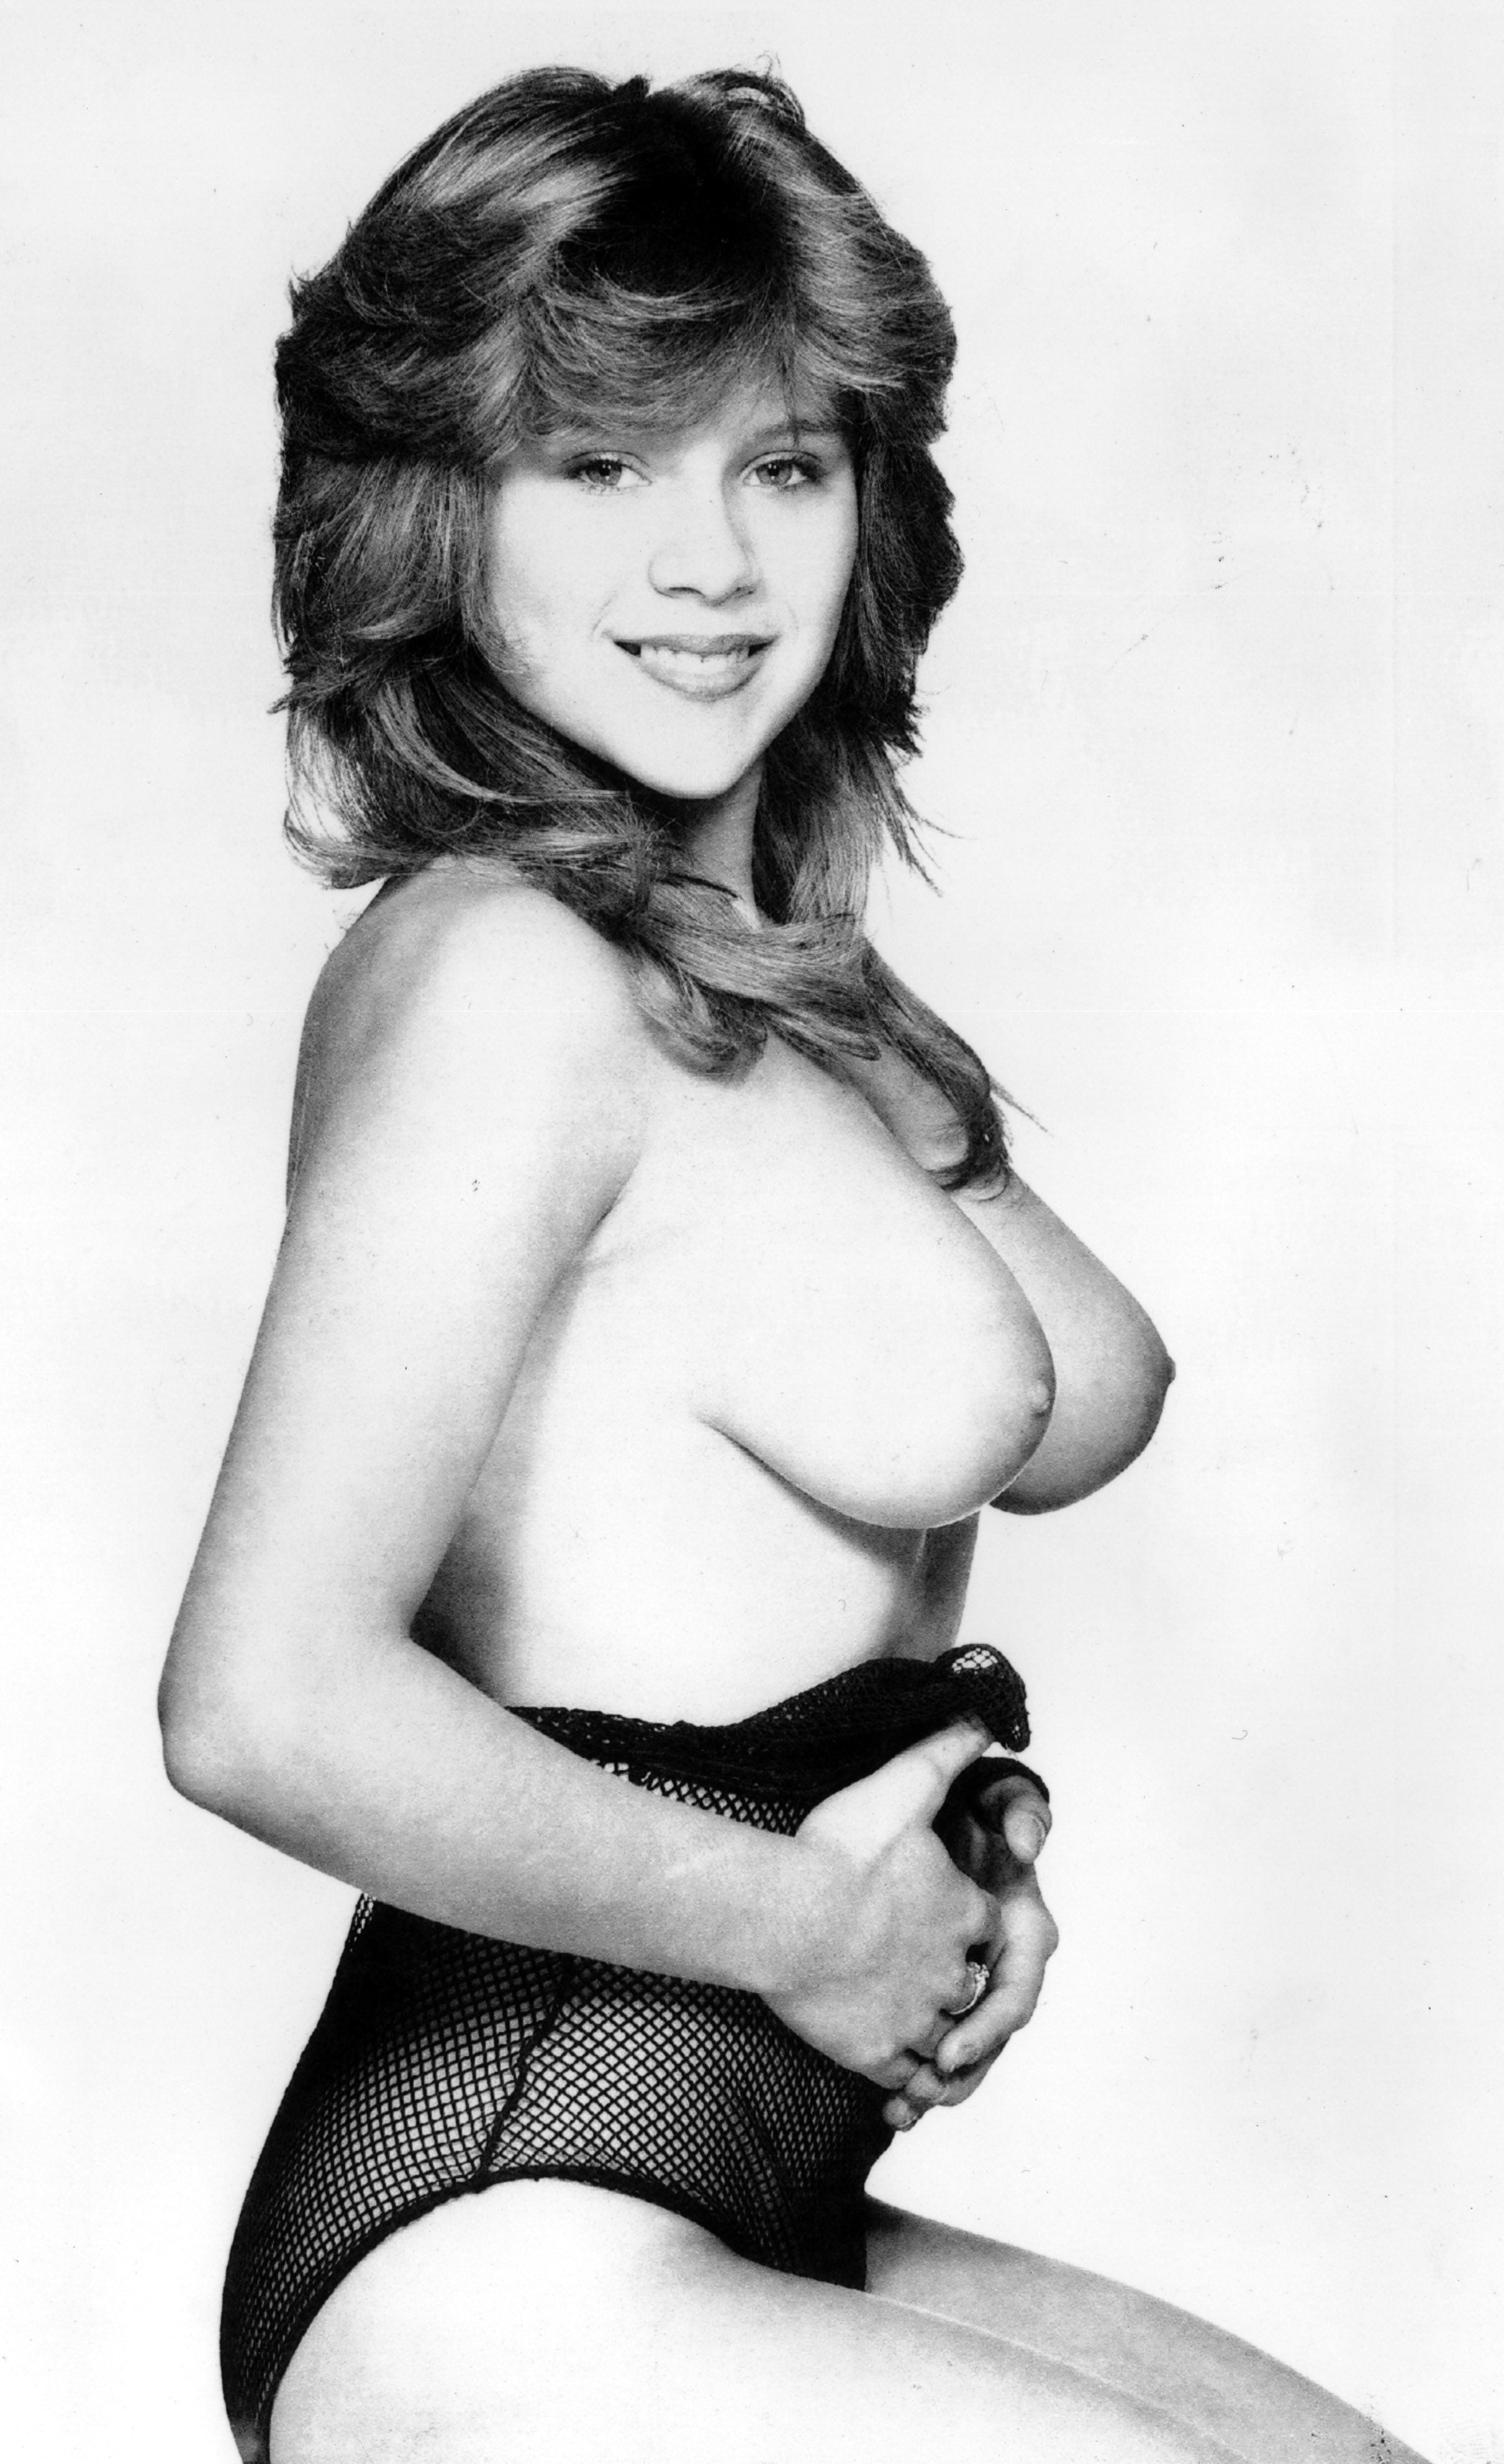 SUN NEWSPAPER PHOTO by BEVERLEY GOODWAY. FORMER PAGE 3 GIRL SAM FOX. FIRST Page three TOPLESS PICTURE USED 22.02.1983 Neg ID 83-696 Negative no longer in the Picture Library.